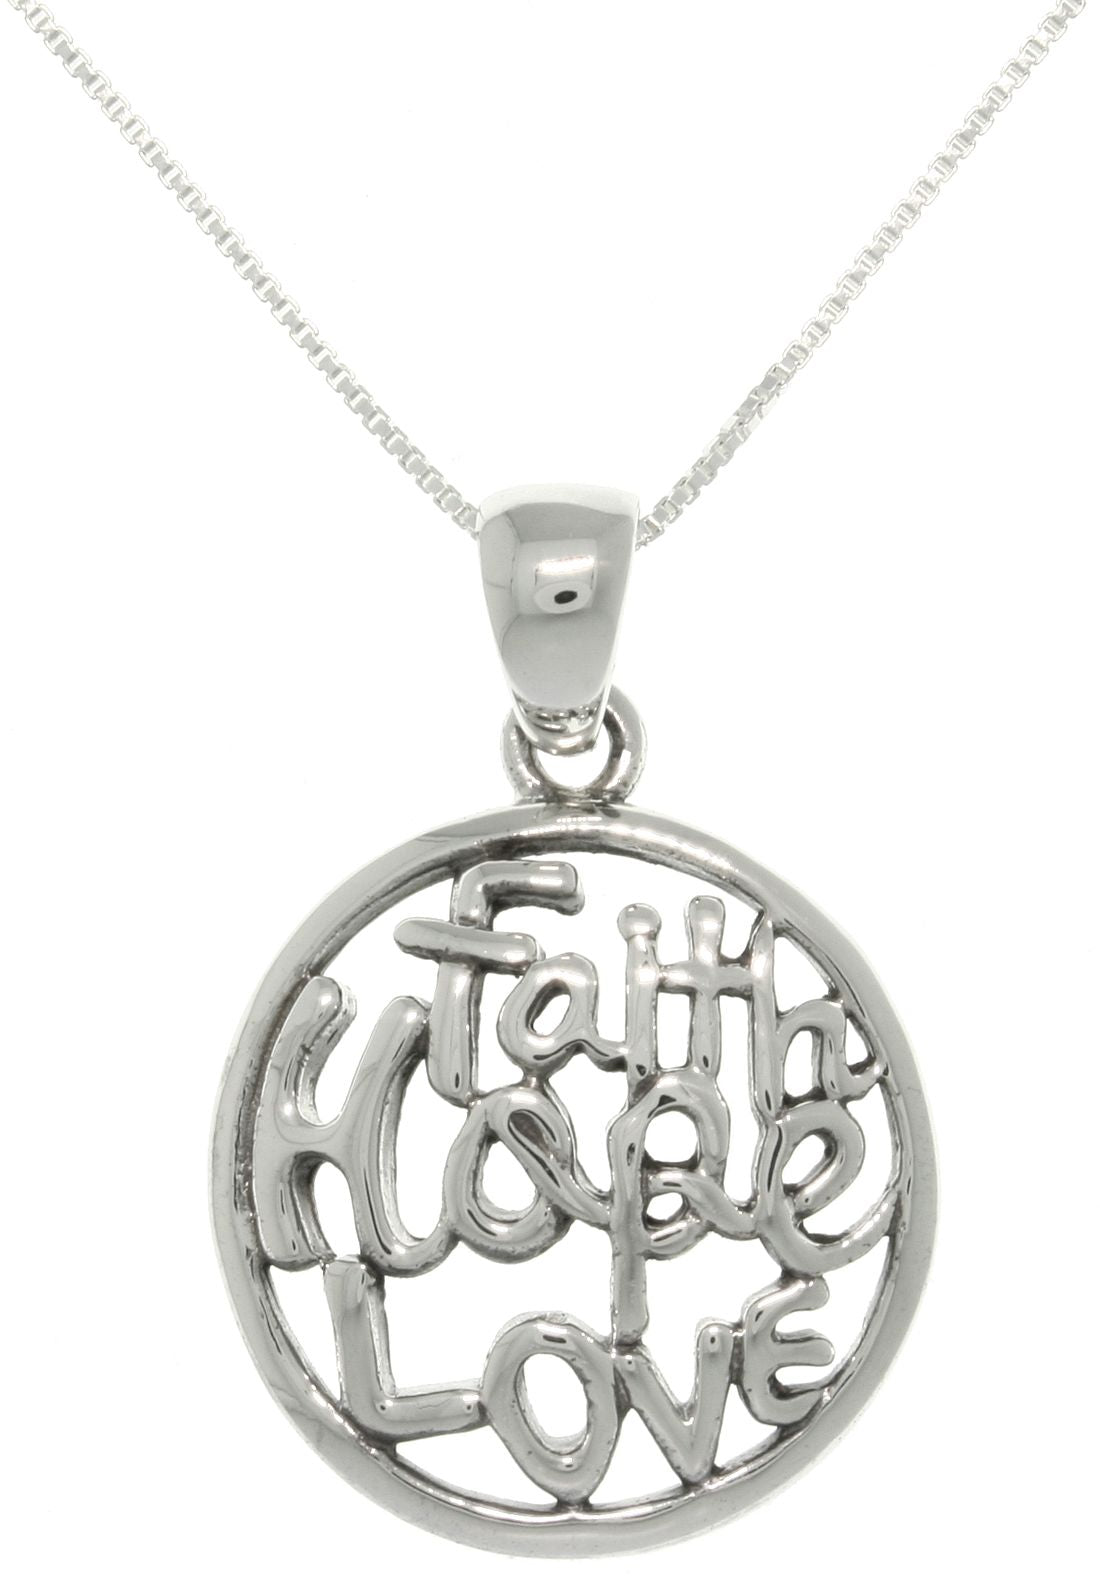 Jewelry trends sterling silver round faith hope love pendant with jewelry trends sterling silver round faith hope love pendant with 18 inch box chain necklace aloadofball Gallery